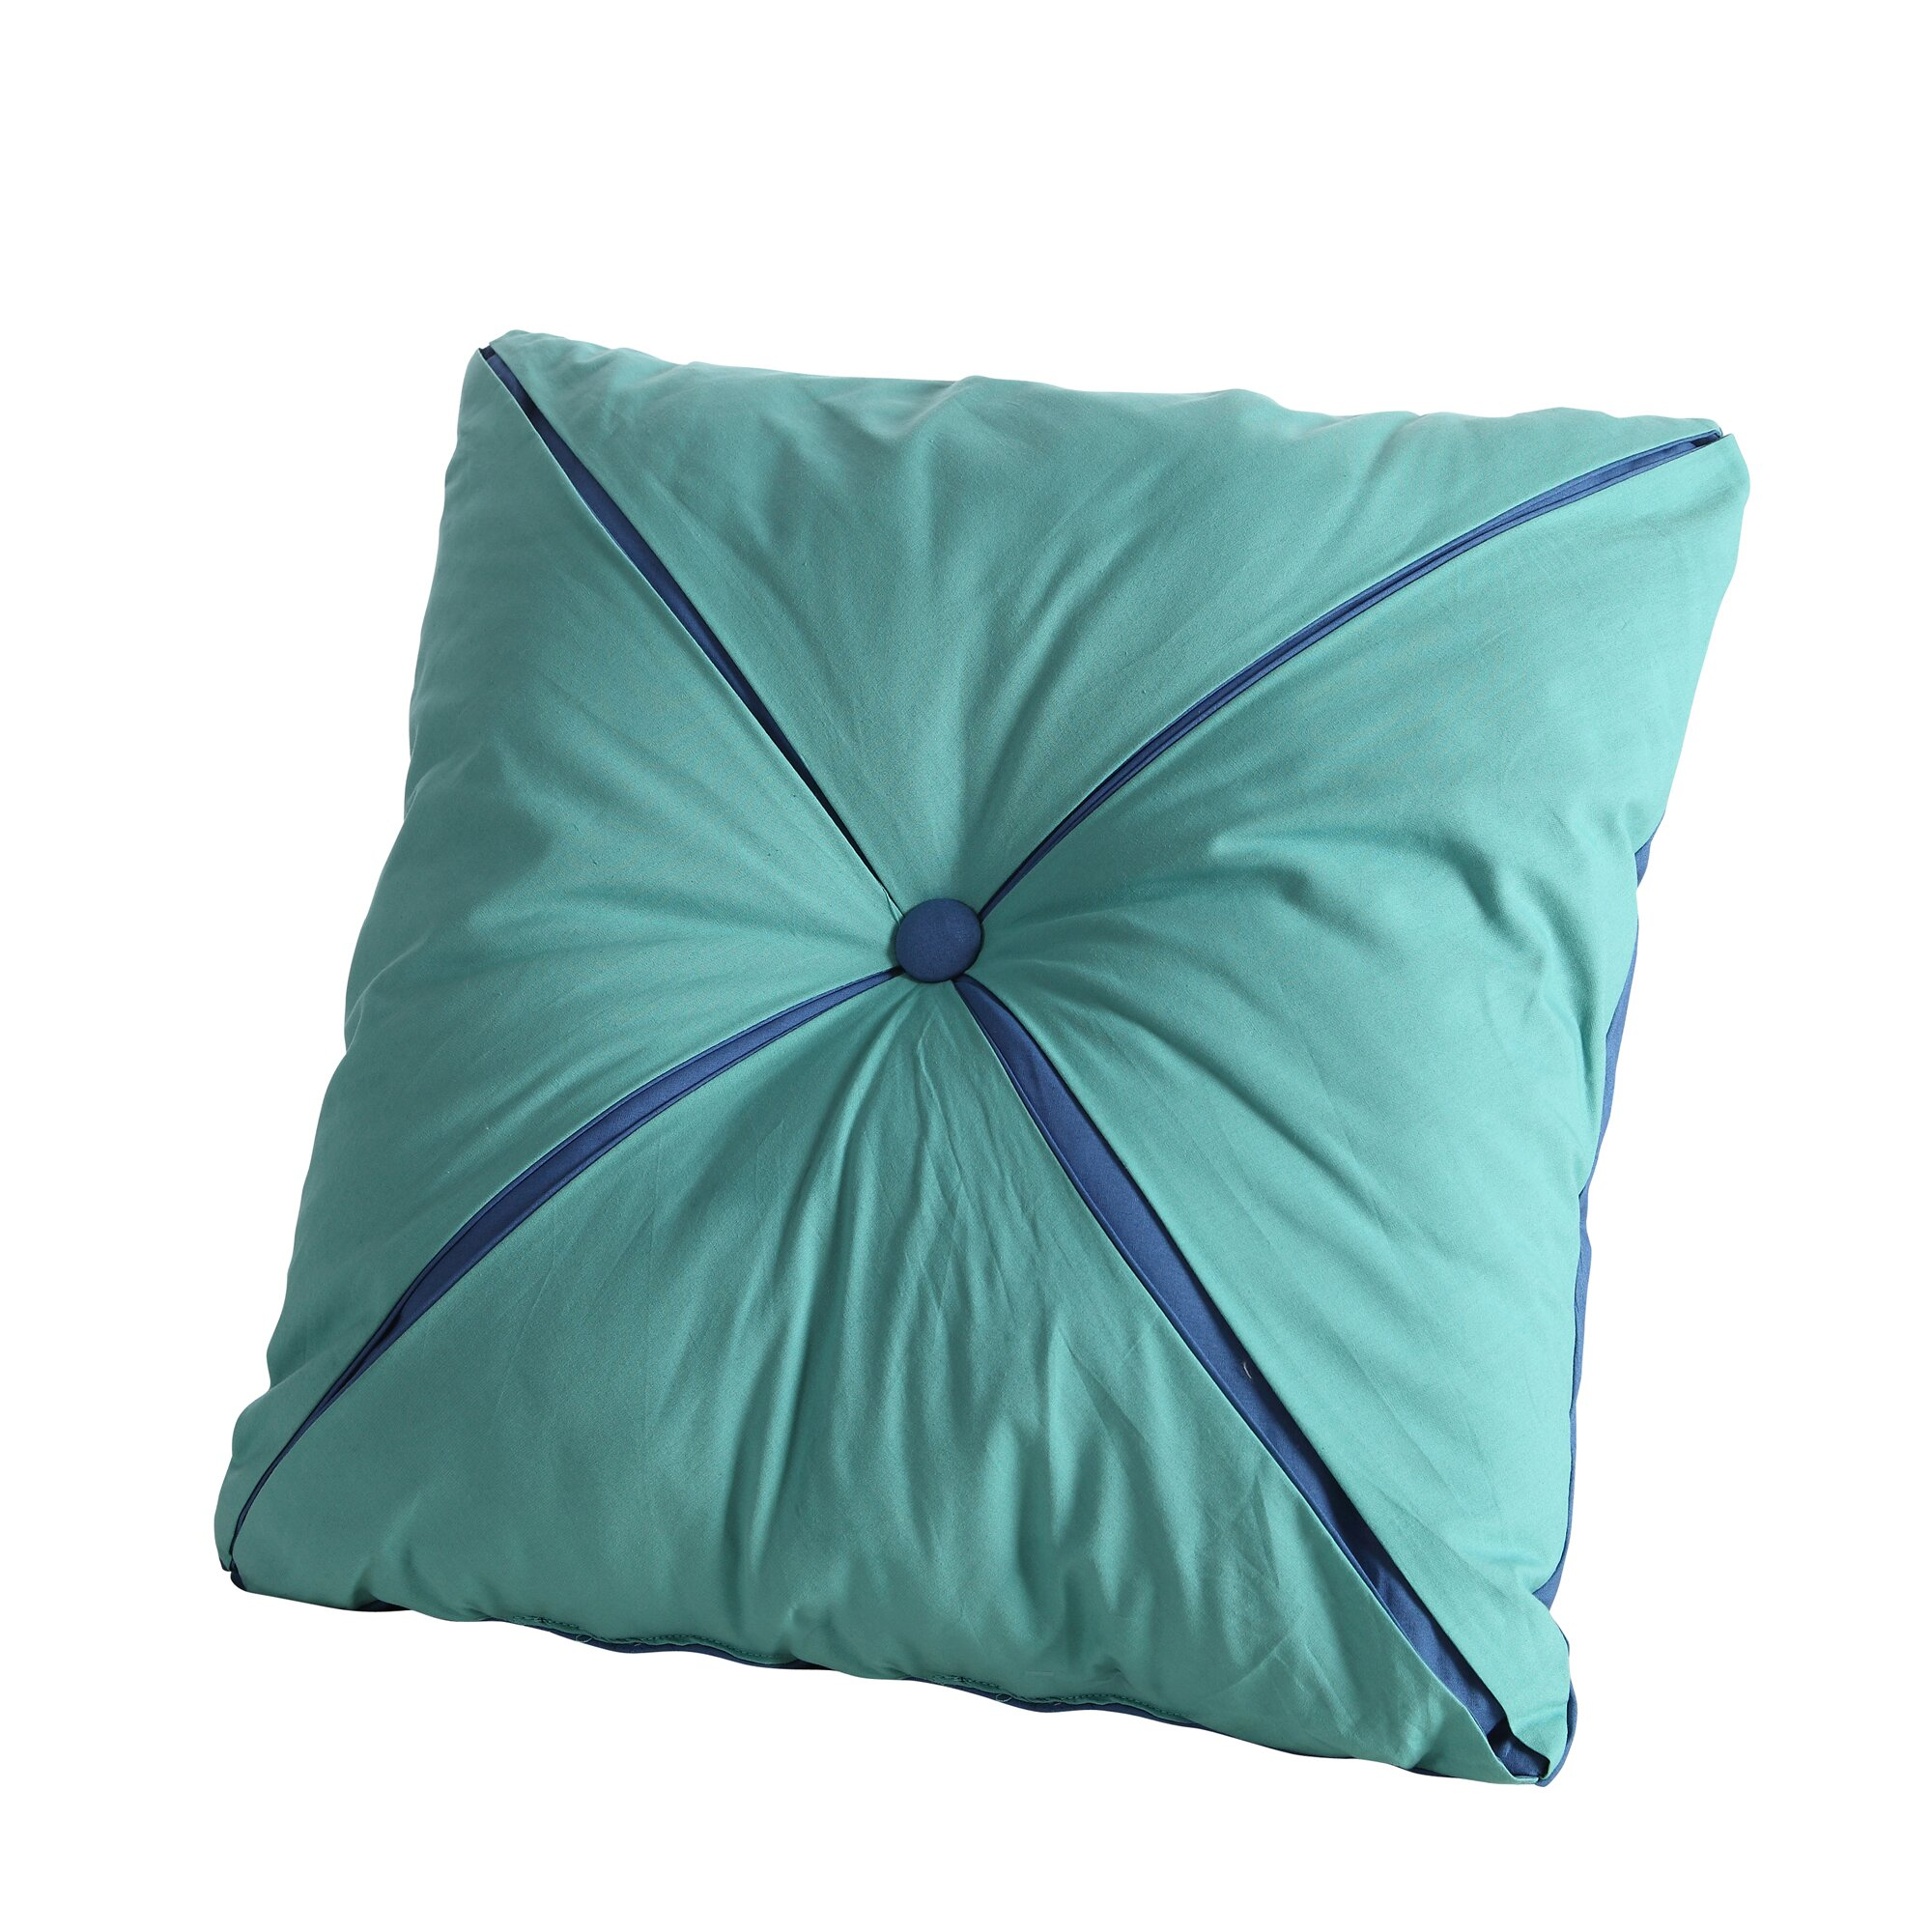 Throw Pillows With Buttons : Fiesta Square Reversible Button Accent Throw Pillow & Reviews Wayfair